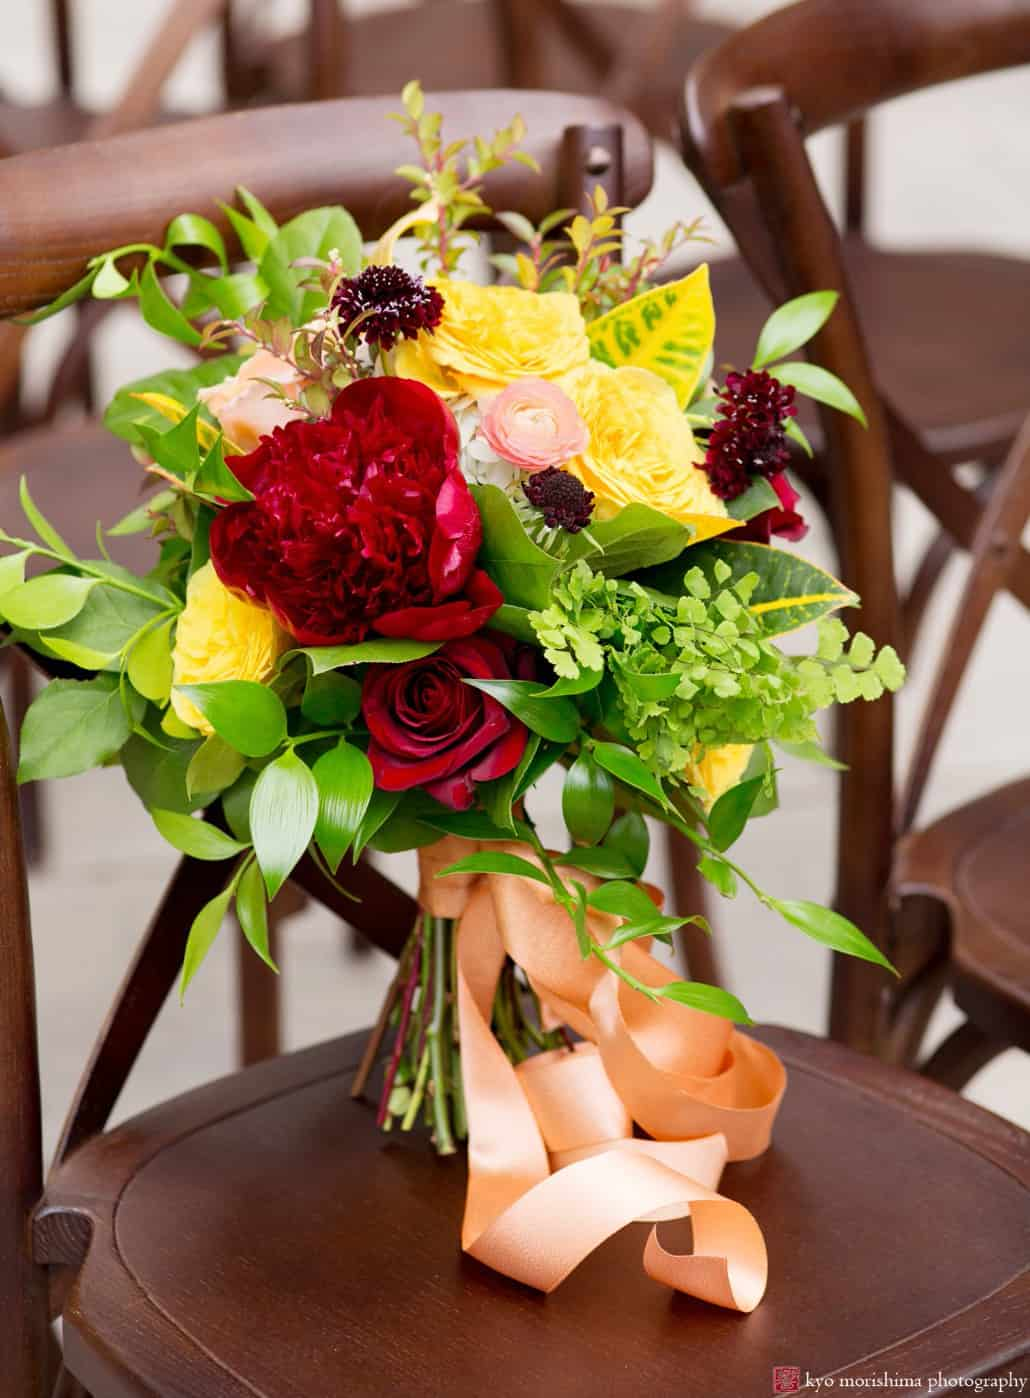 Colorful maroon and gold bouquet with dark red roses and peonies, yellow roses, pale blush ranunculus, ruby scabiosa, and croton petra leaves, tied with apricot ribbon. Wedding bouquet by Kristin Rockhill of Details of I Do, photographed by Kyo Morishima